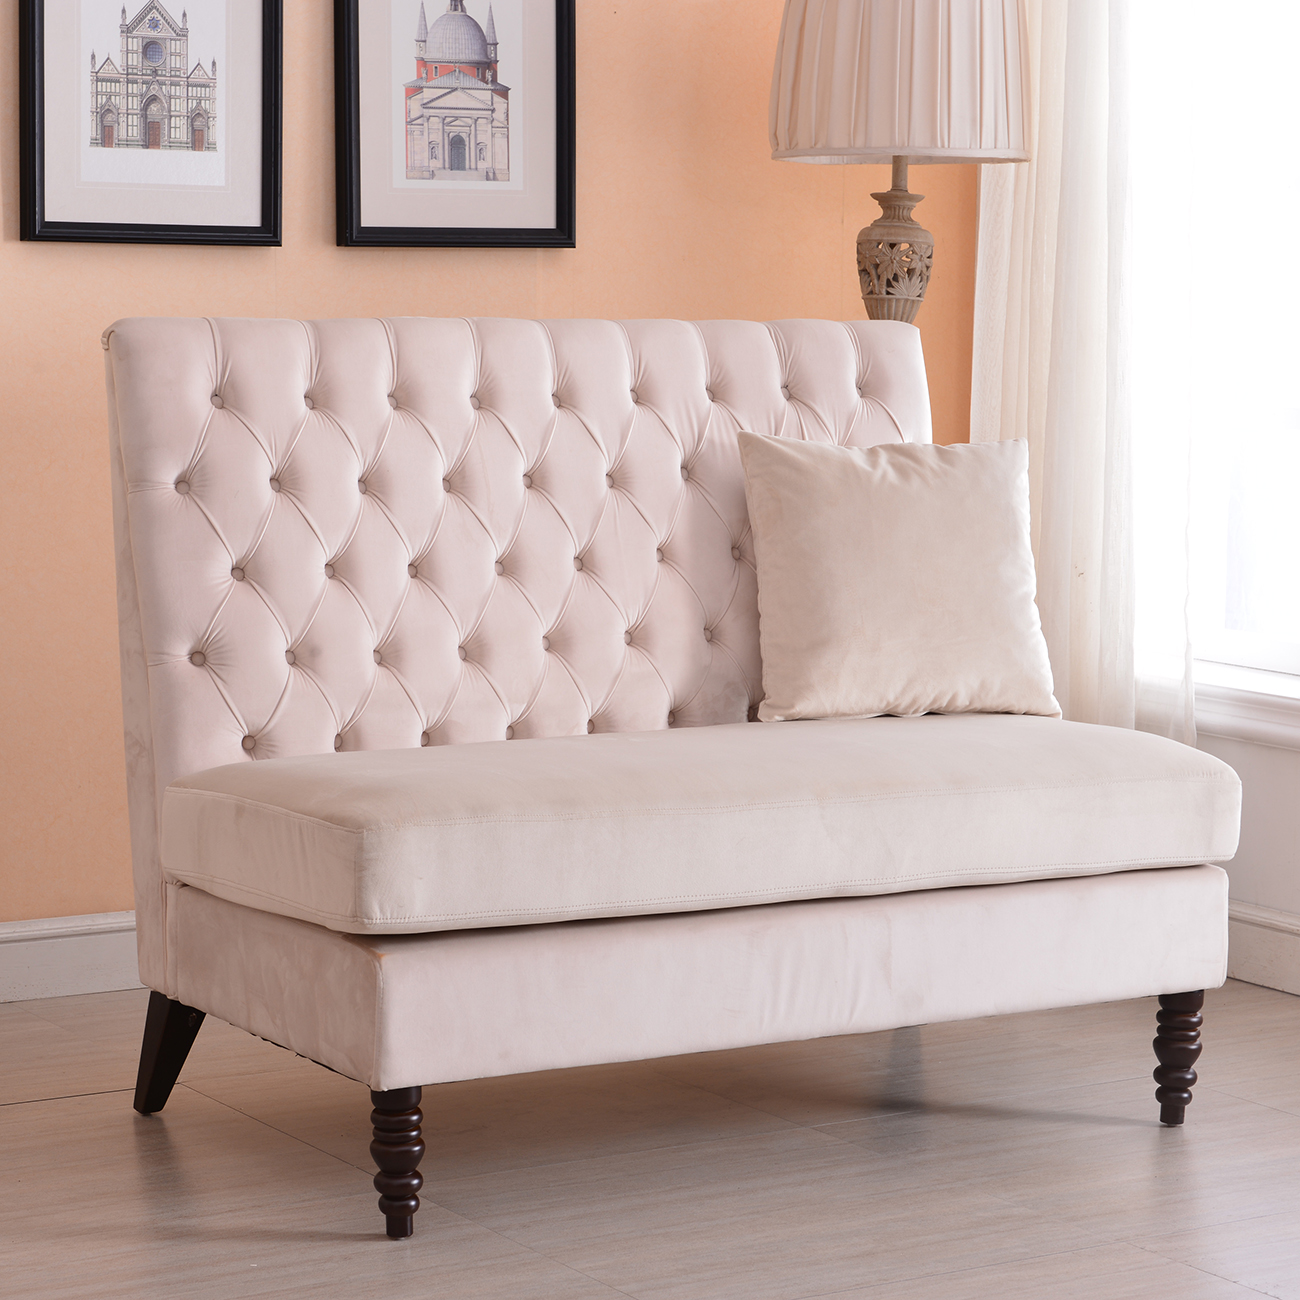 Belleze Beige Modern Loveseat Bench Sofa Tufted Settee High Back Love Seat  Bedroom, Velvet